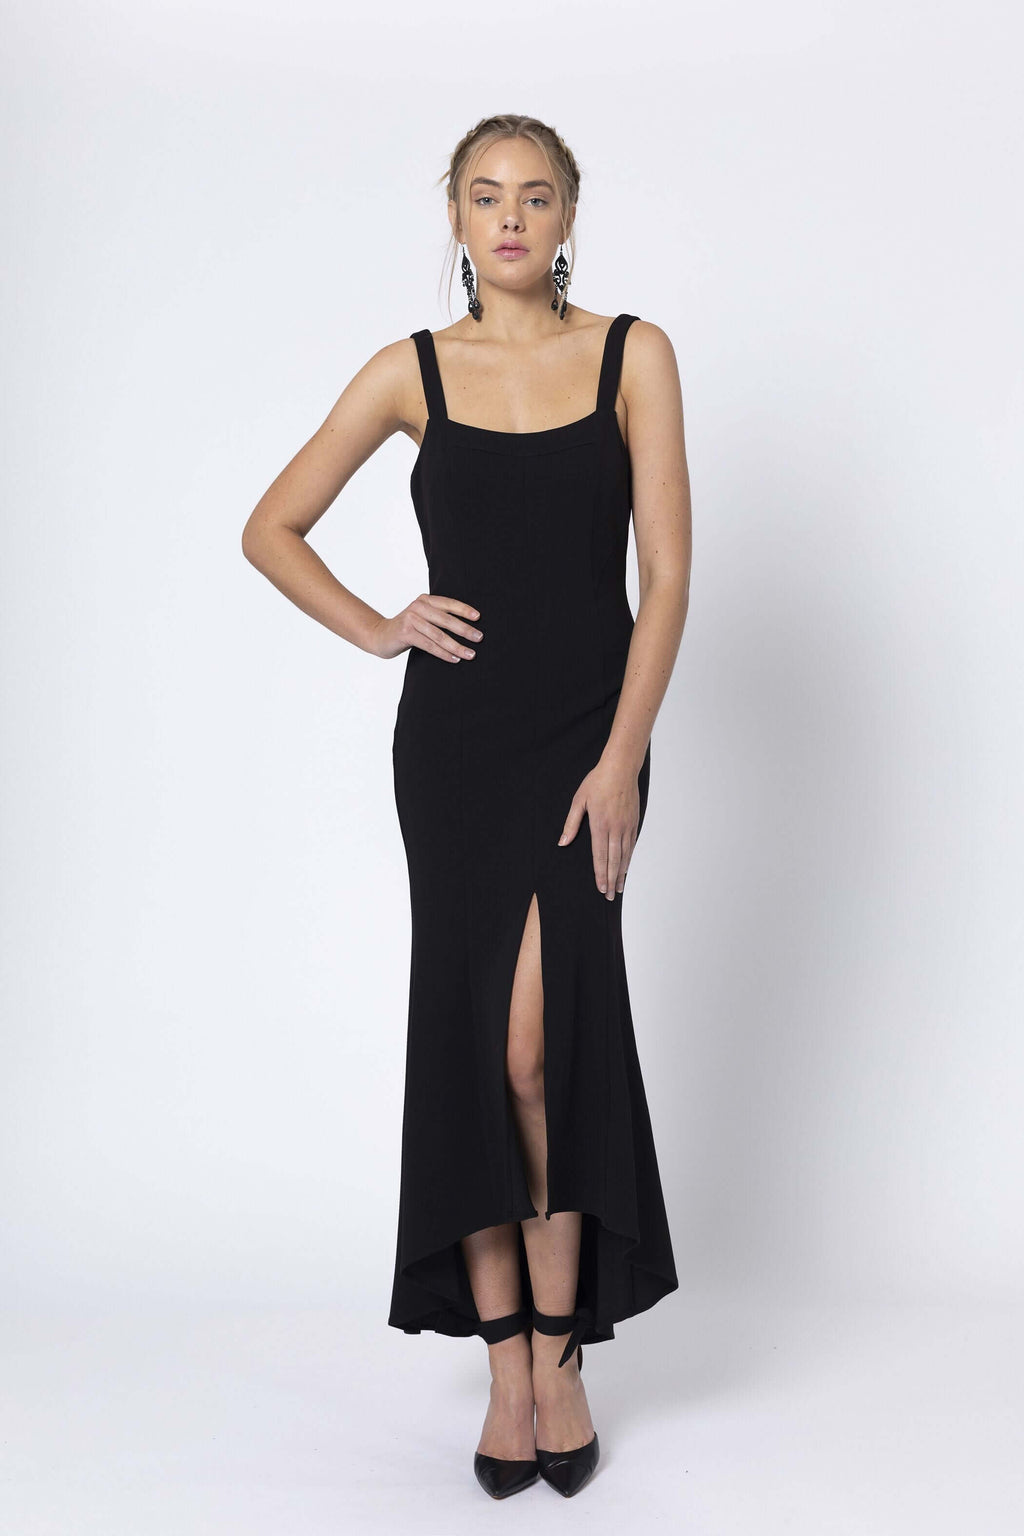 Romance Besos Black Cocktail Dress RD201012 (4528275030101)